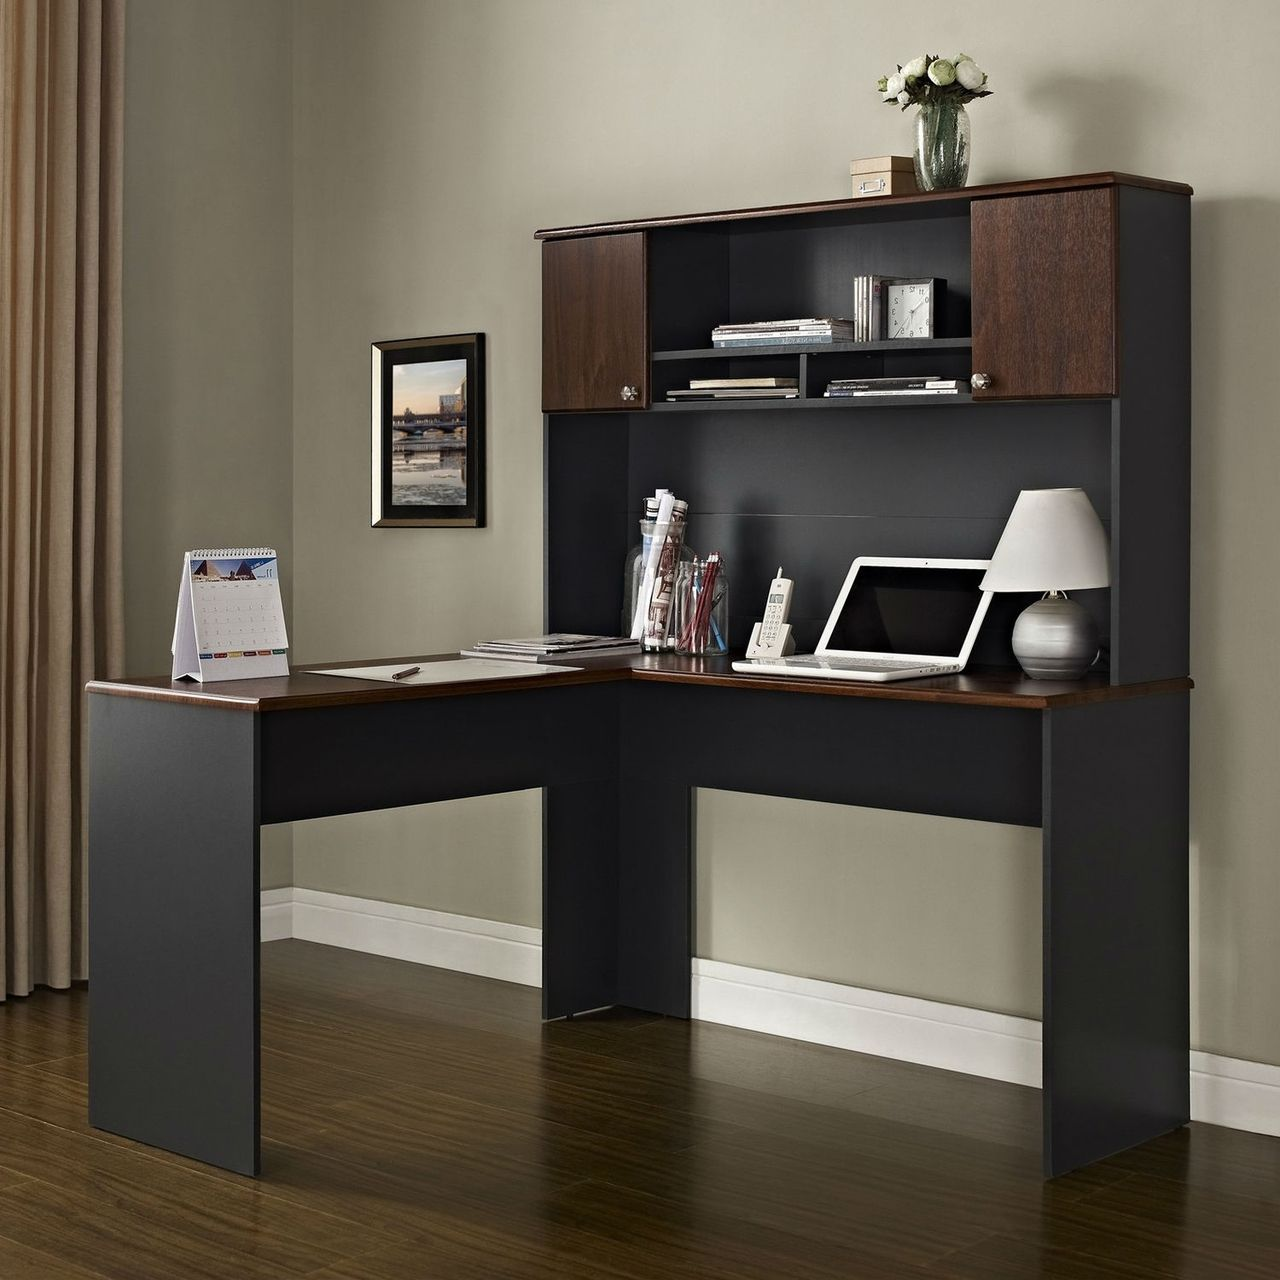 L Shaped Office Computer Desk With Hutch In Slate Grey And Cherry Wood Finish Quality House